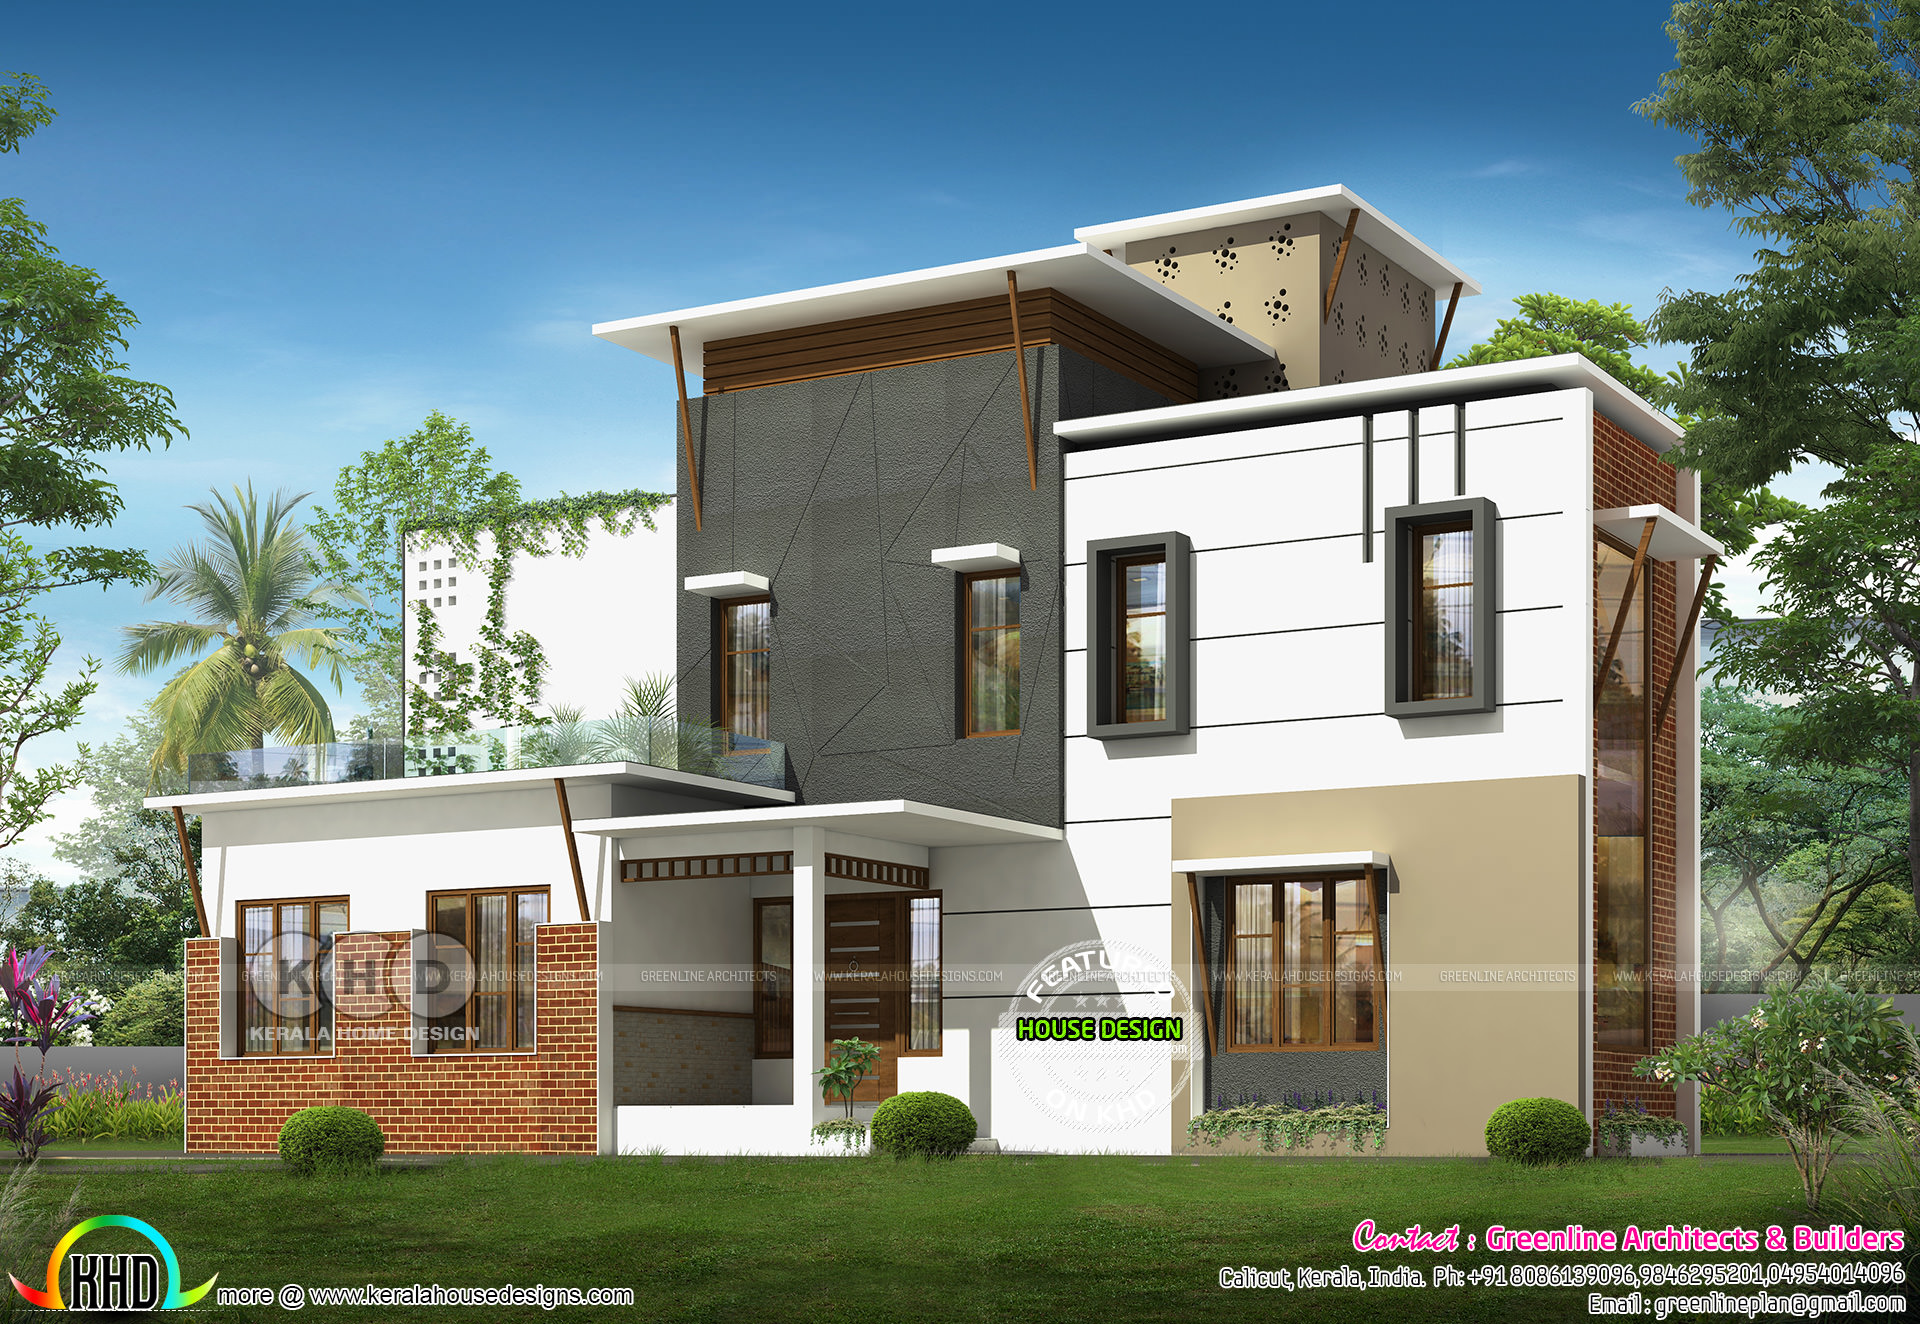 2018 - Kerala home design and floor plans Box House Contemporary Design Html on luxury box house, metal box house, cool box house, asian box house, christmas box house, classic box house, simple box house, tiny house box house, wooden box house, 2 story box house, futuristic box house, salsa box house, craftsman box house, american box house, cottage box house, fun box house,